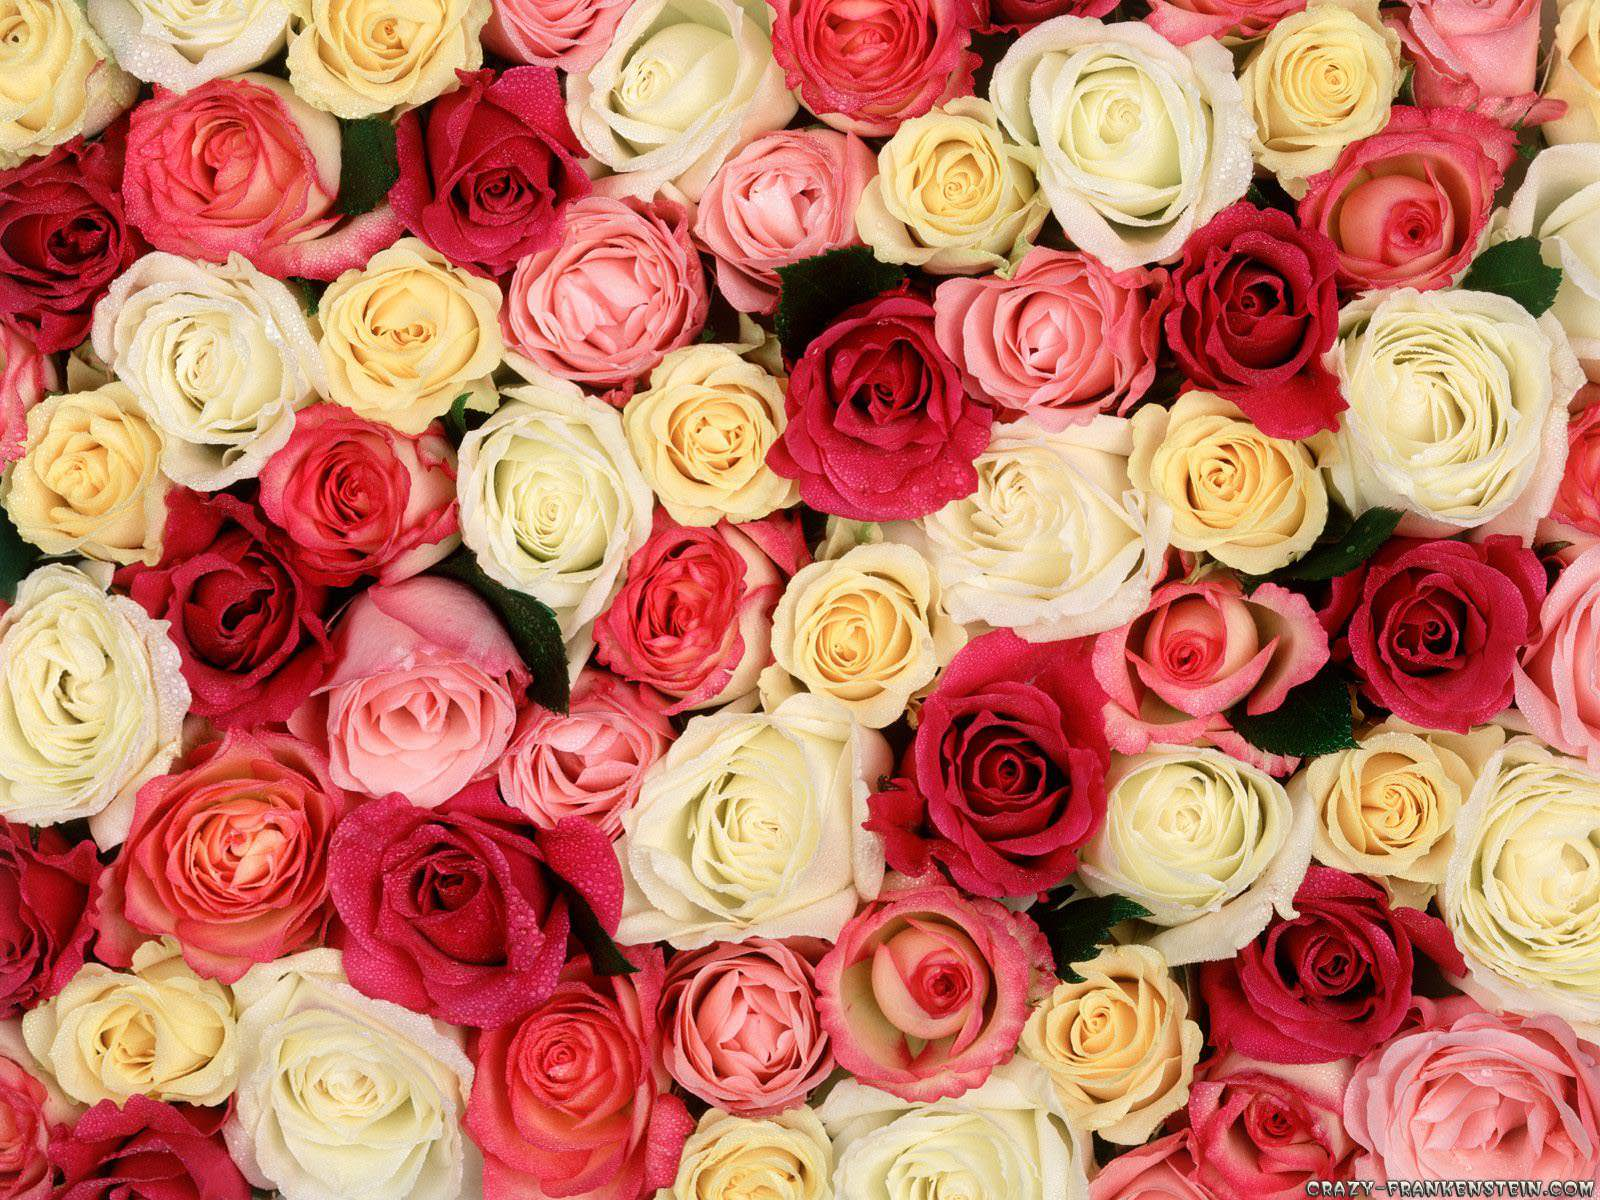 29 roses backgrounds wallpapers images pictures